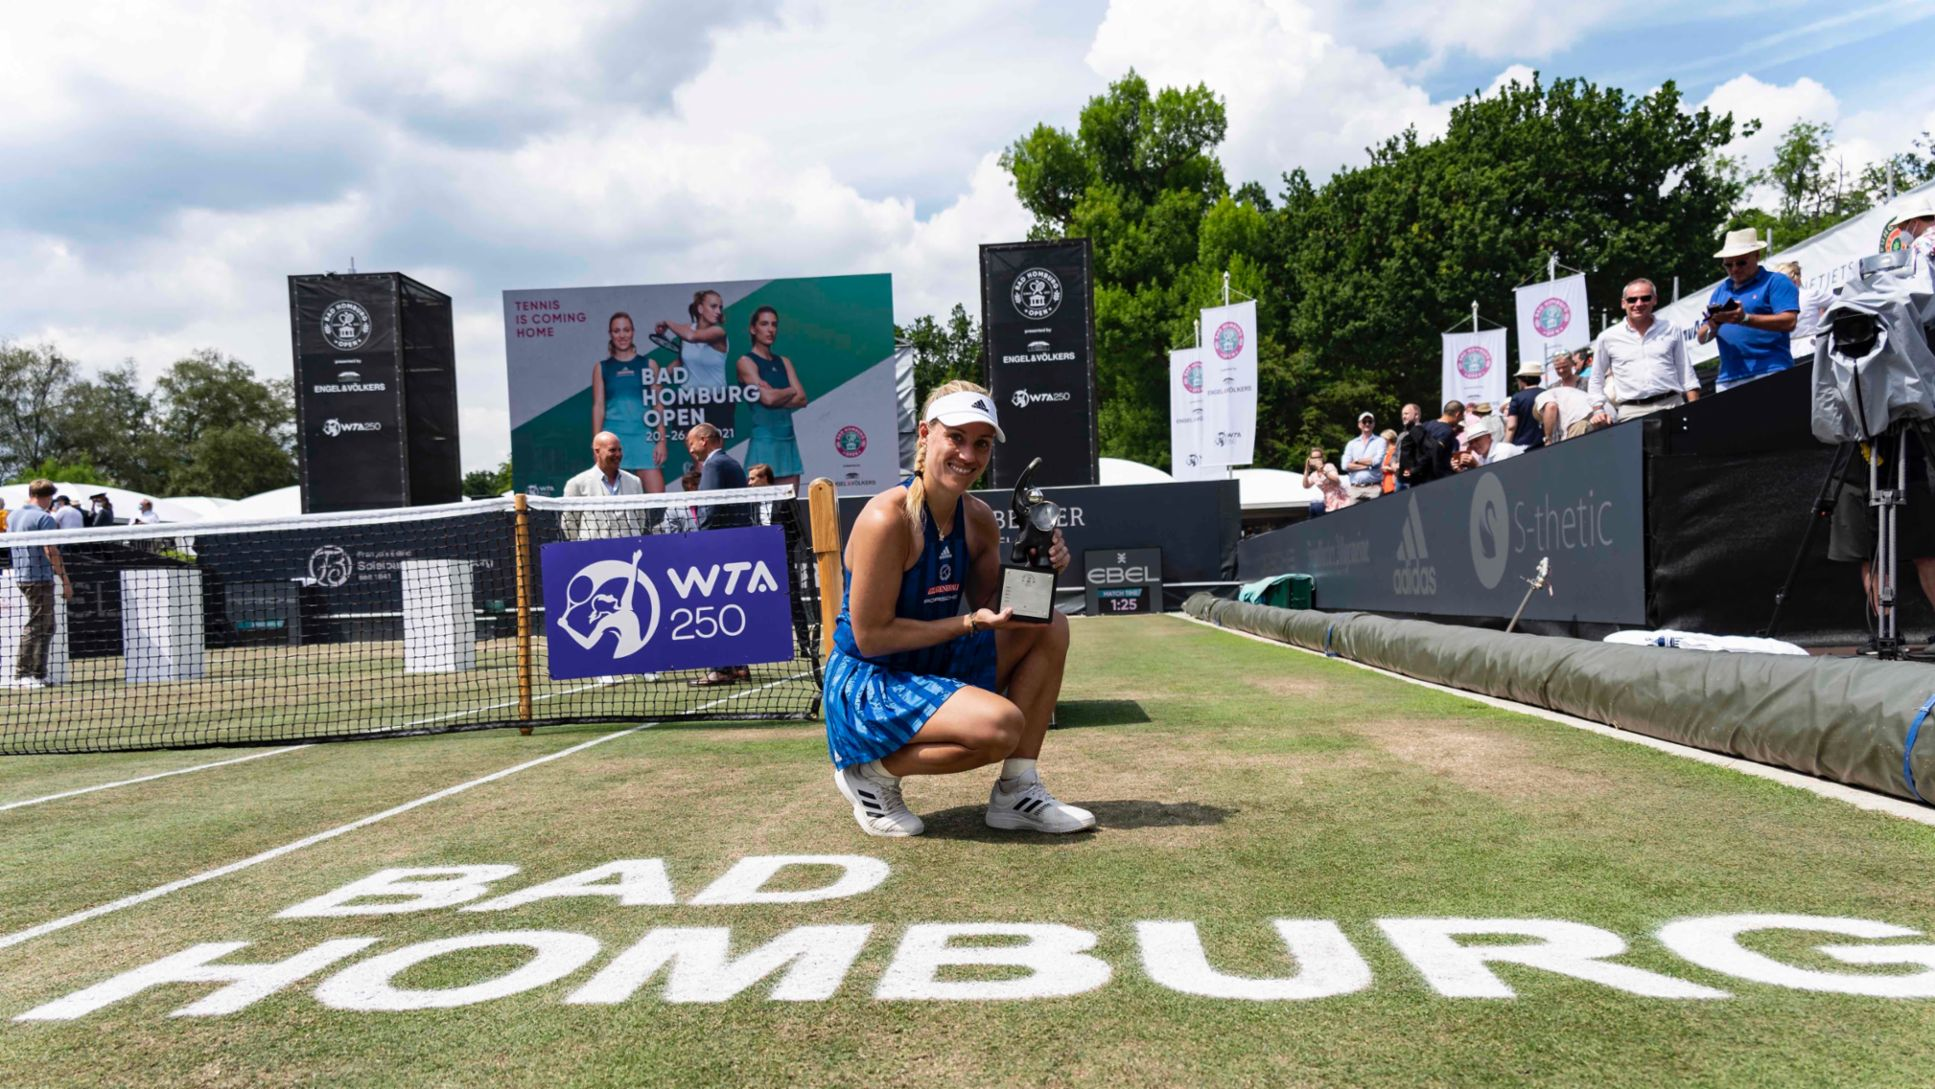 Angelique Kerber wins her 13th WTA title at the Bad Homburg Open - Image 3